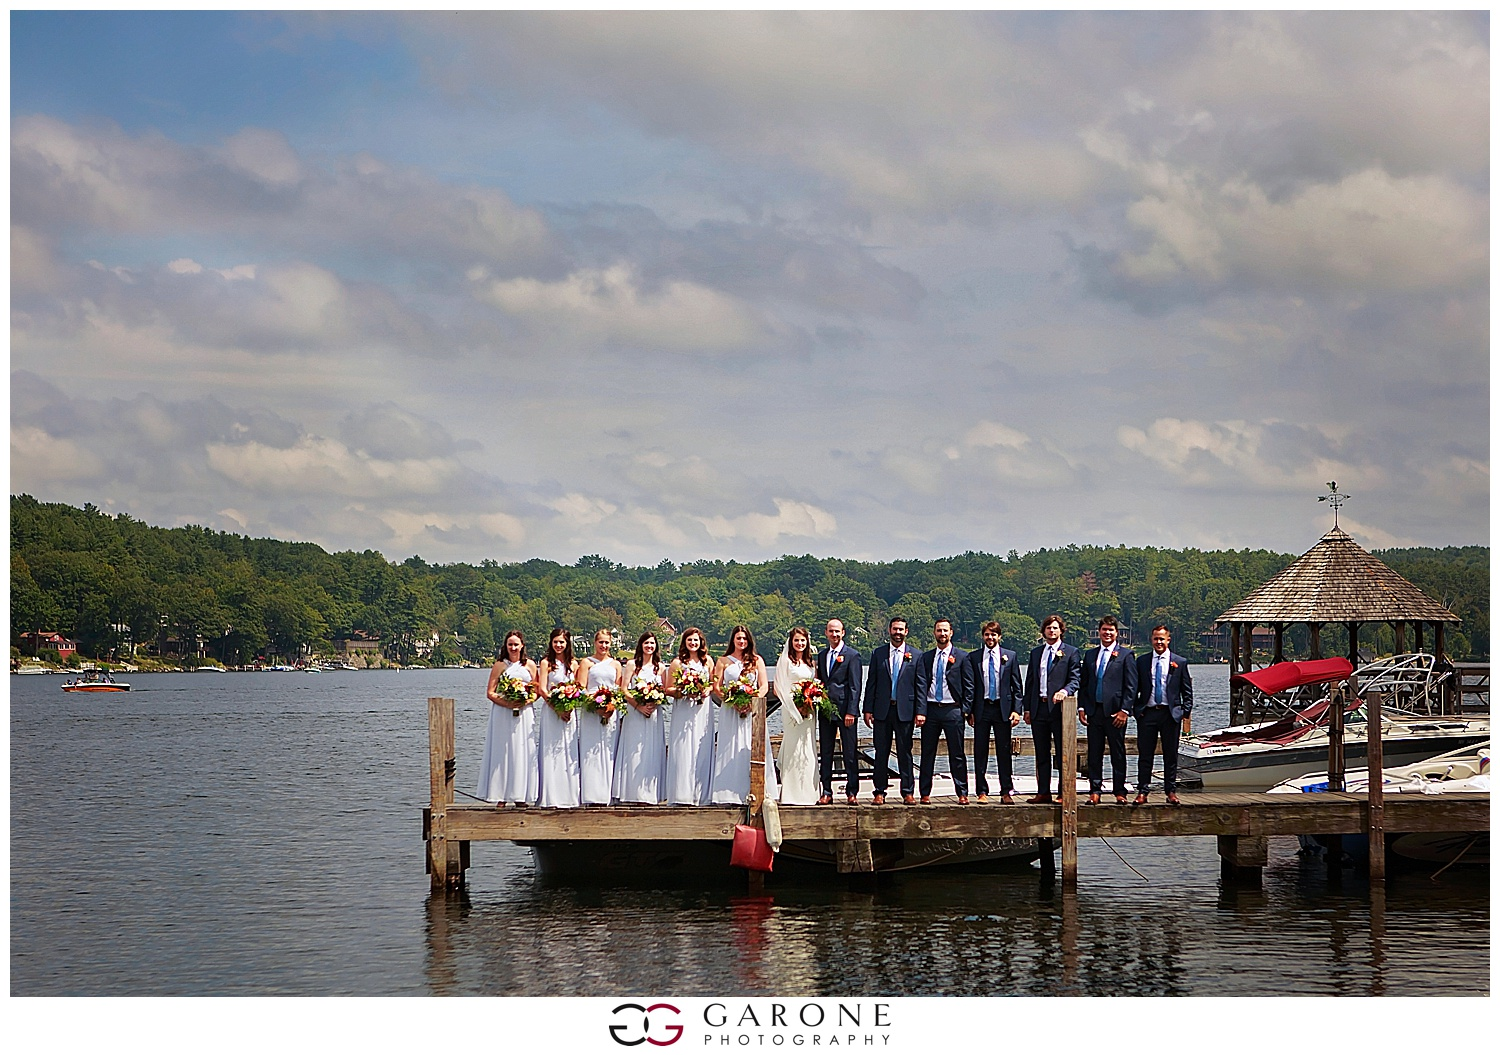 Church_Landing_Garone_Photography_Wedding_Sarah_Patrick_0012.jpg